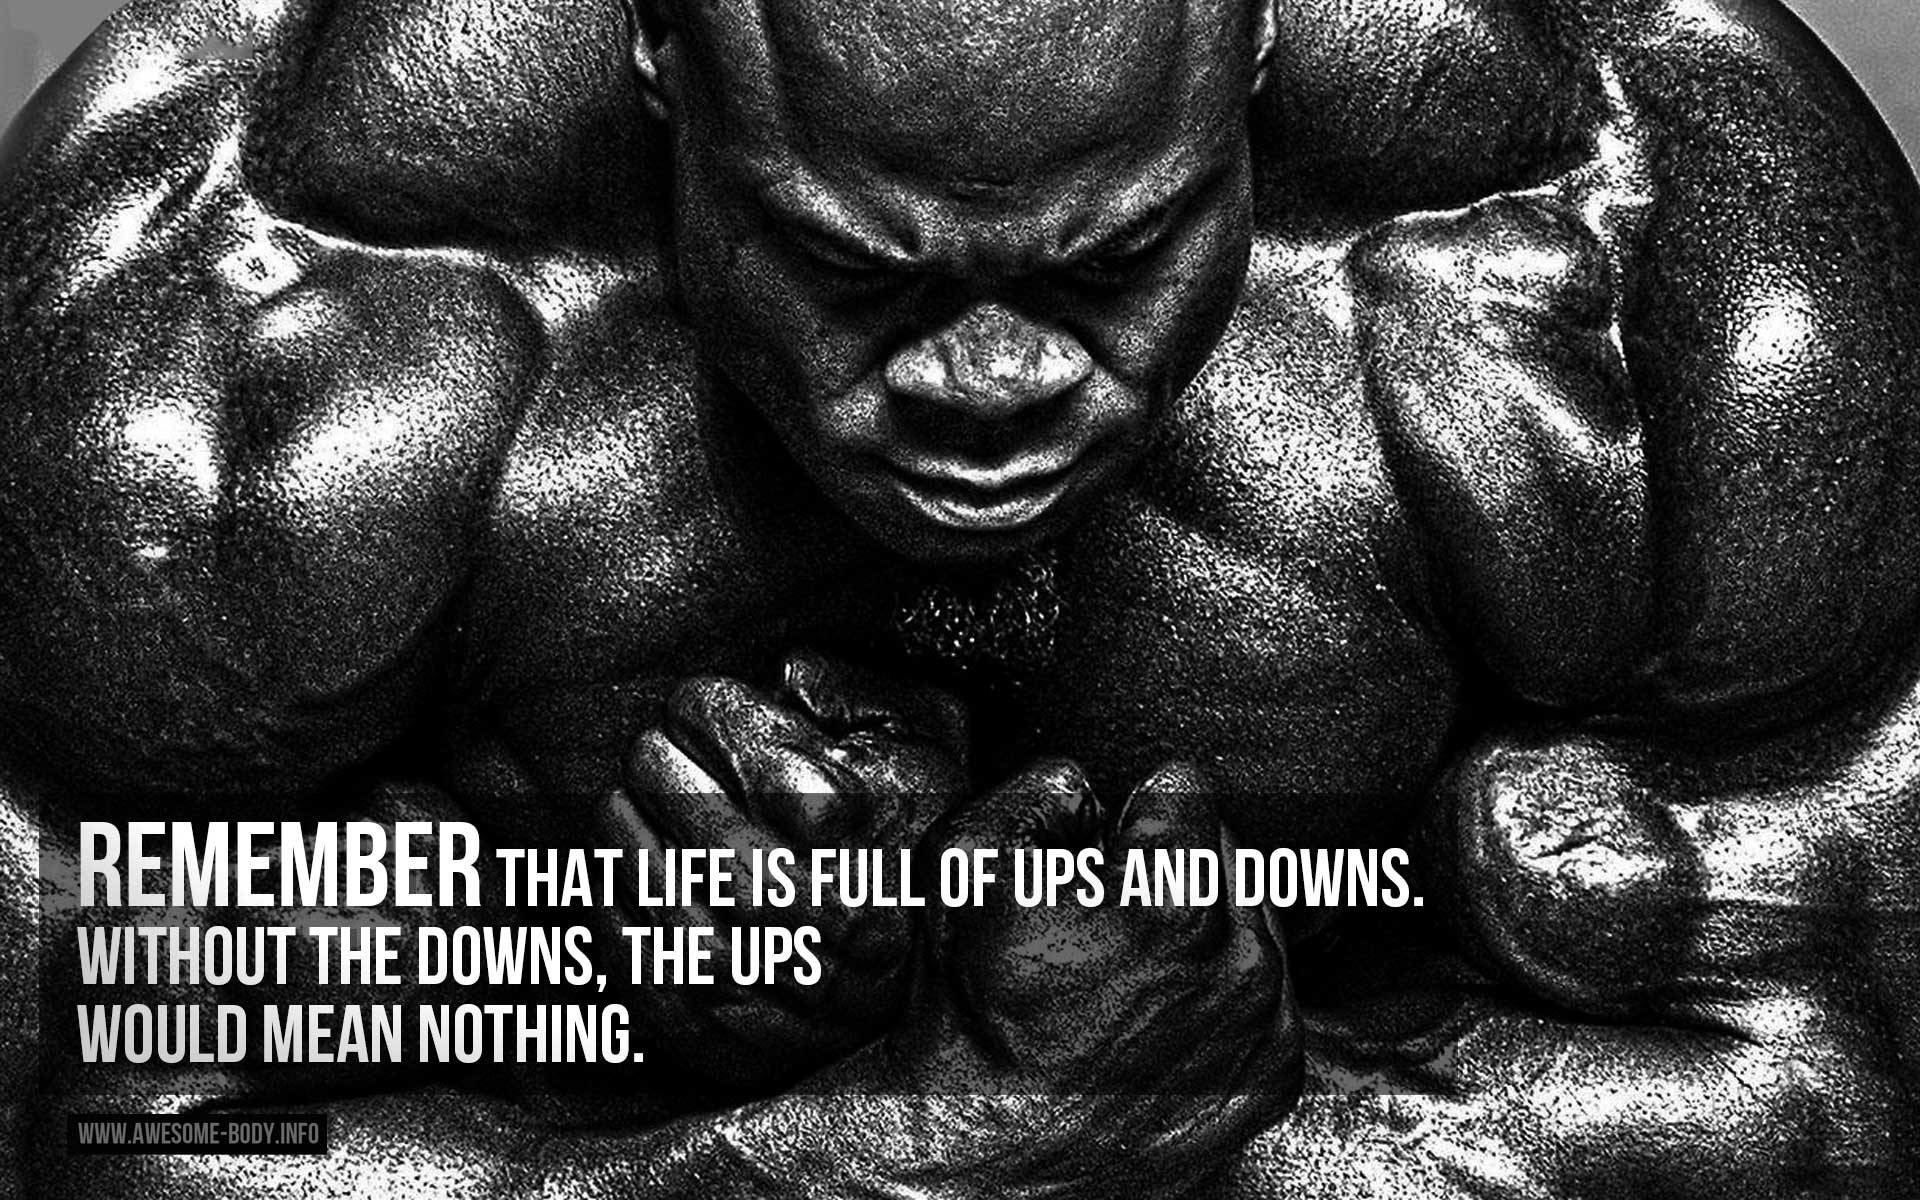 Dwayne Joohnson Inspirational Quotes Wallpaper Powerlifting Motivational Wallpapers 82 Images